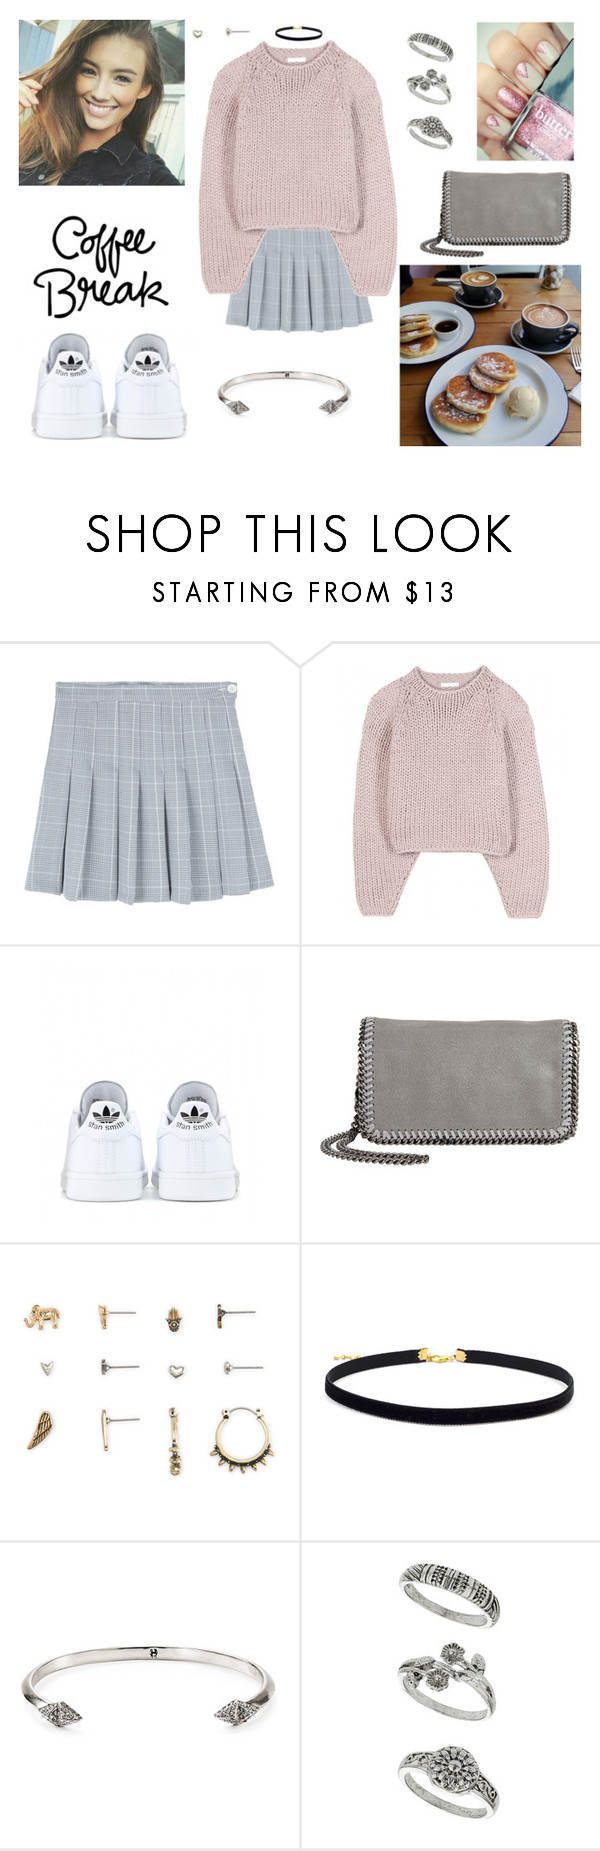 """30/04/17"" by milena-serranista ❤ liked on Polyvore featuring Chloé, adidas, STELLA McCARTNEY, Aéropostale, House of Harlow 1960 and Miss Selfridge"